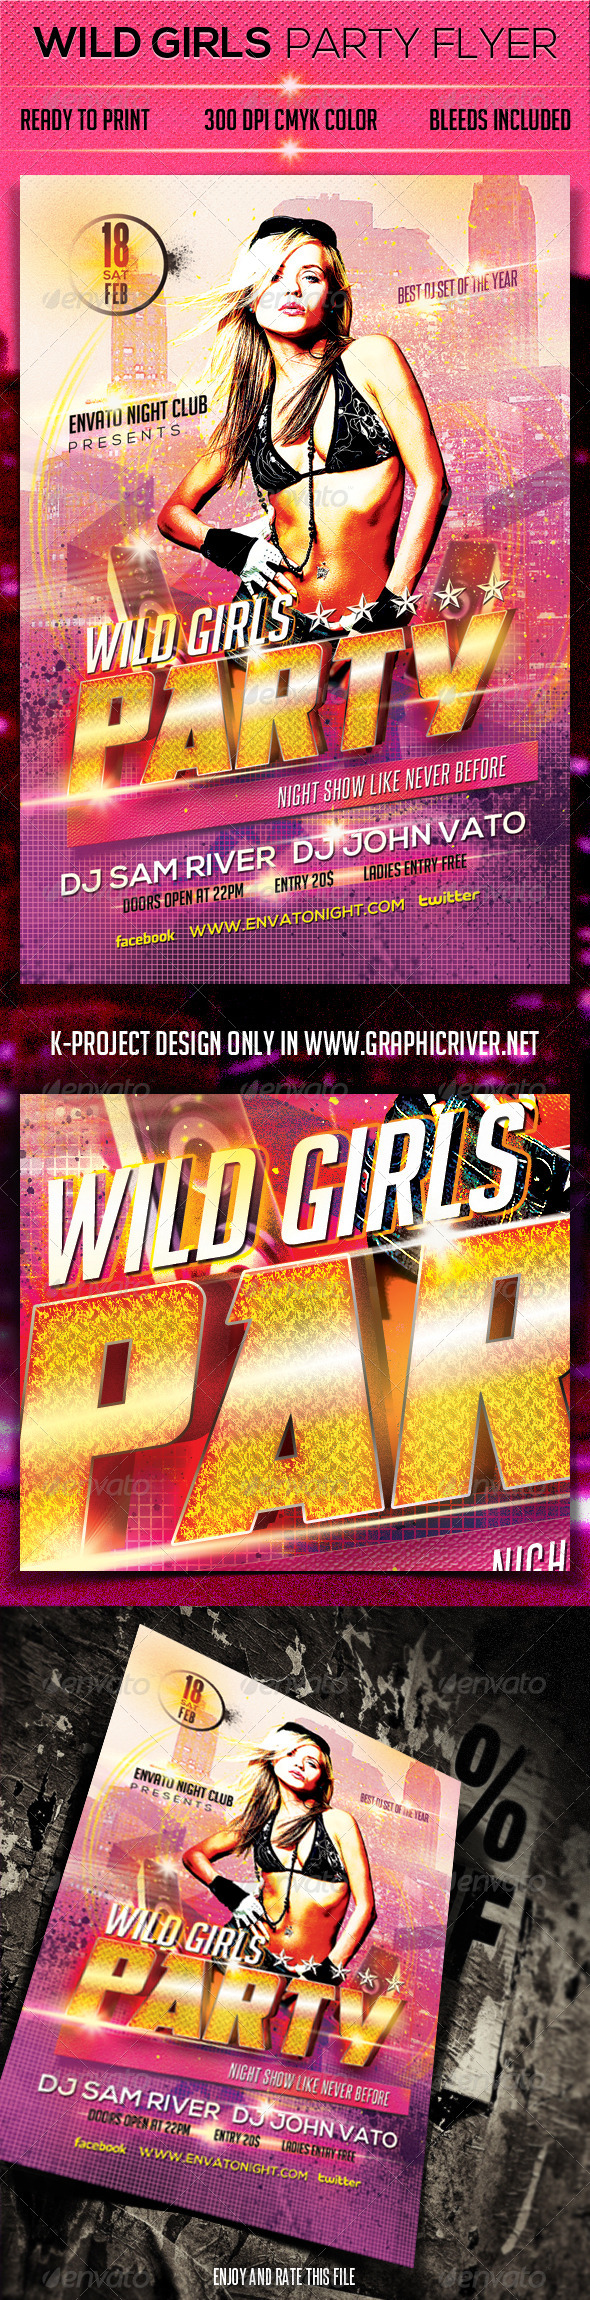 Wild Girls Party Flyer - Clubs & Parties Events